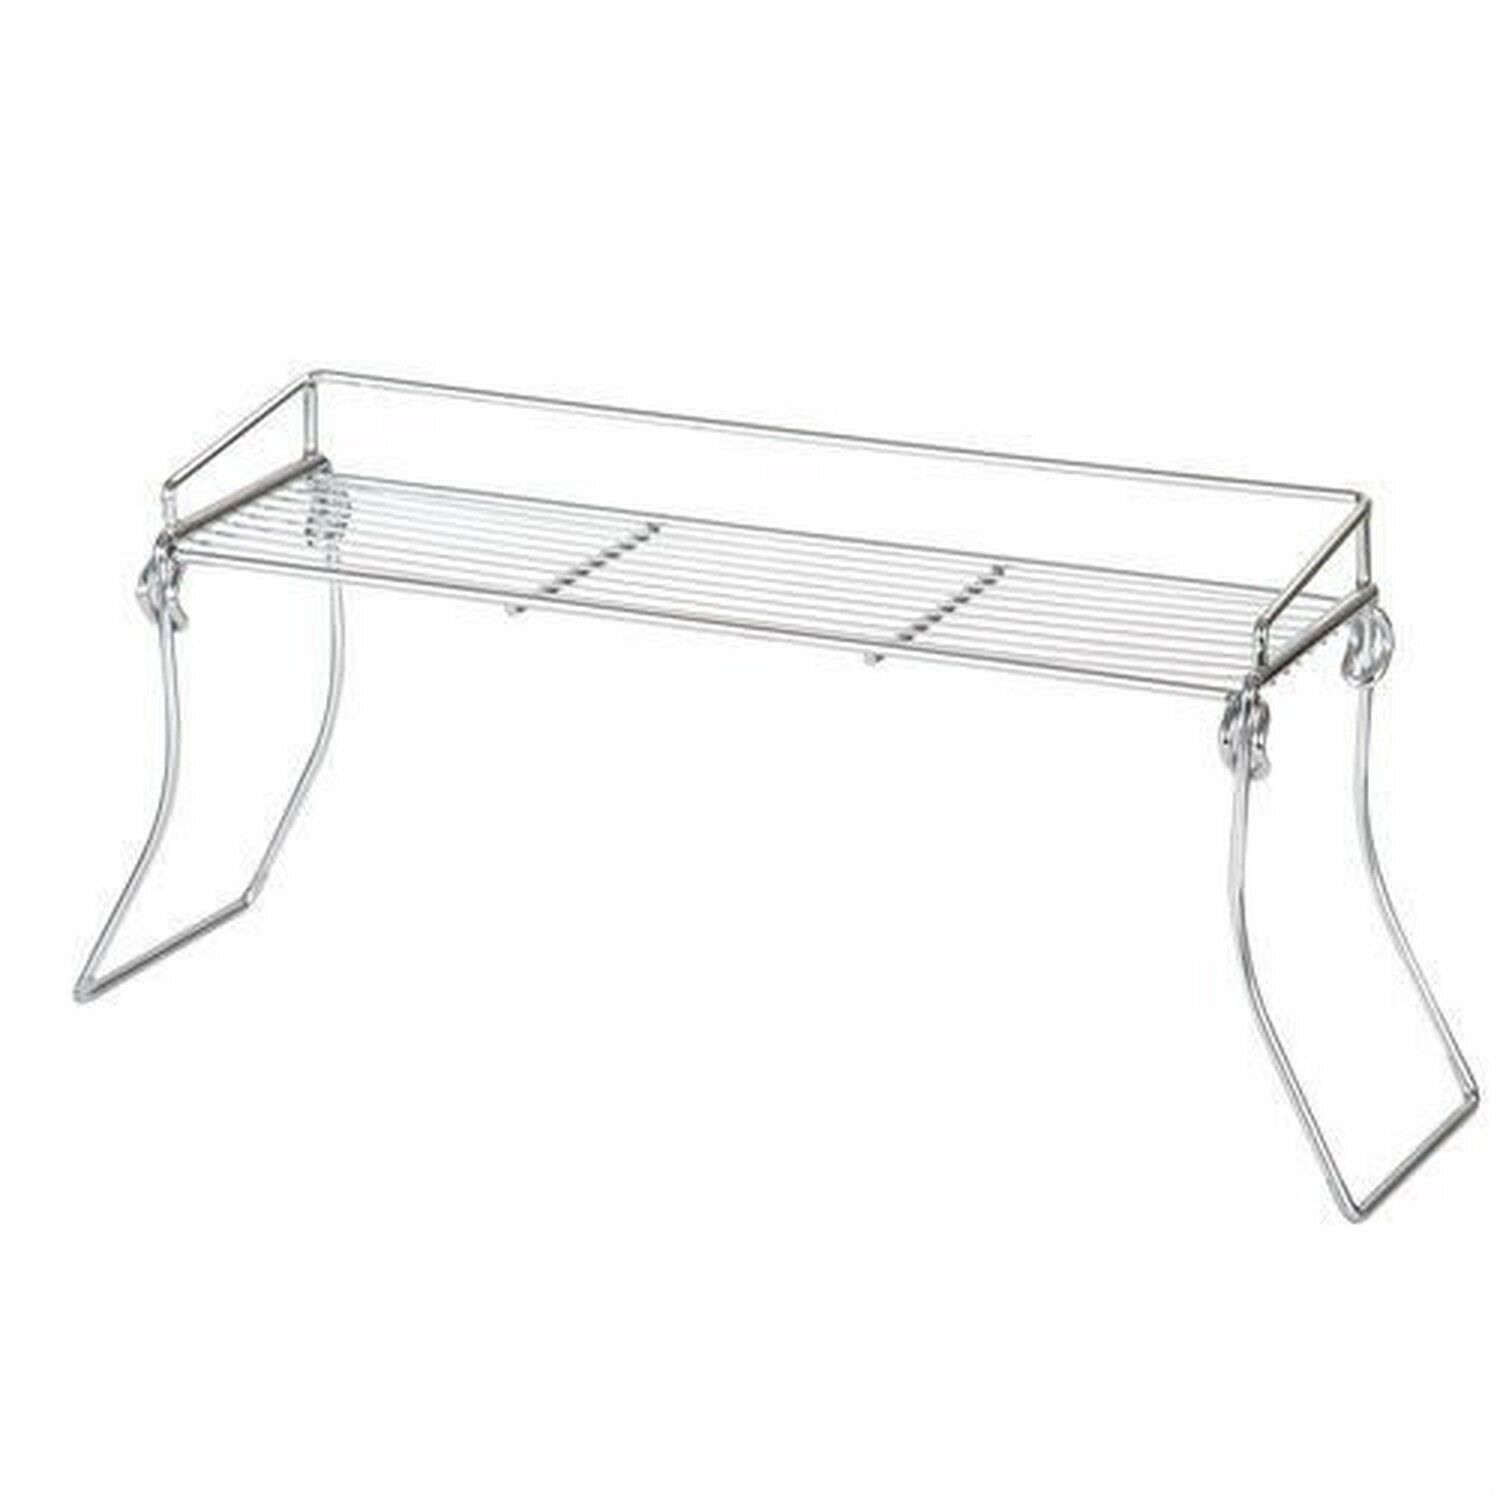 Nice Mainstays Over The Sink Shelf, Chrome By Mainstays